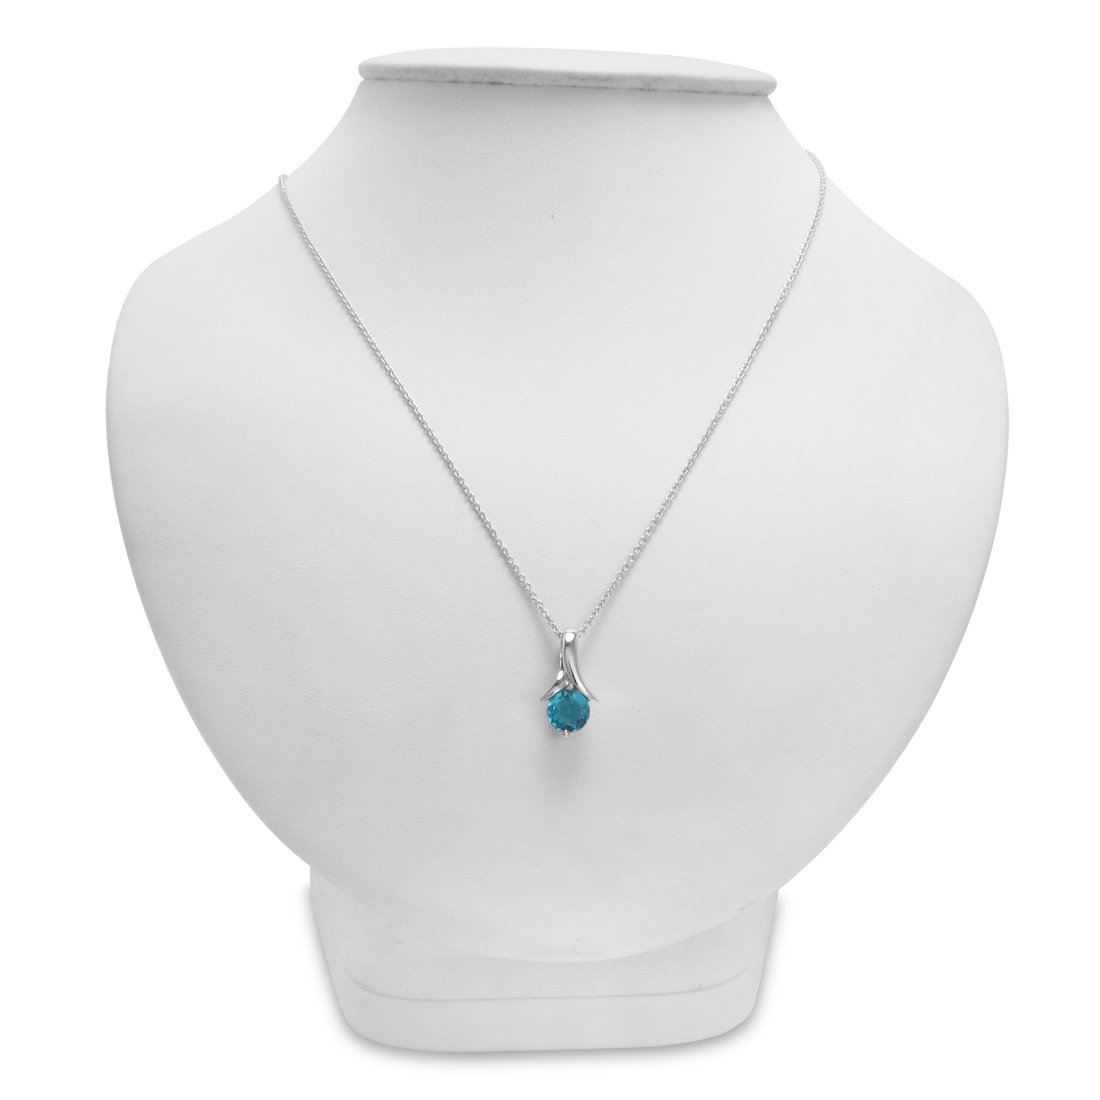 Solitaire Gemstone Pendant Necklace in Sterling Silver on an 18 inch Chain